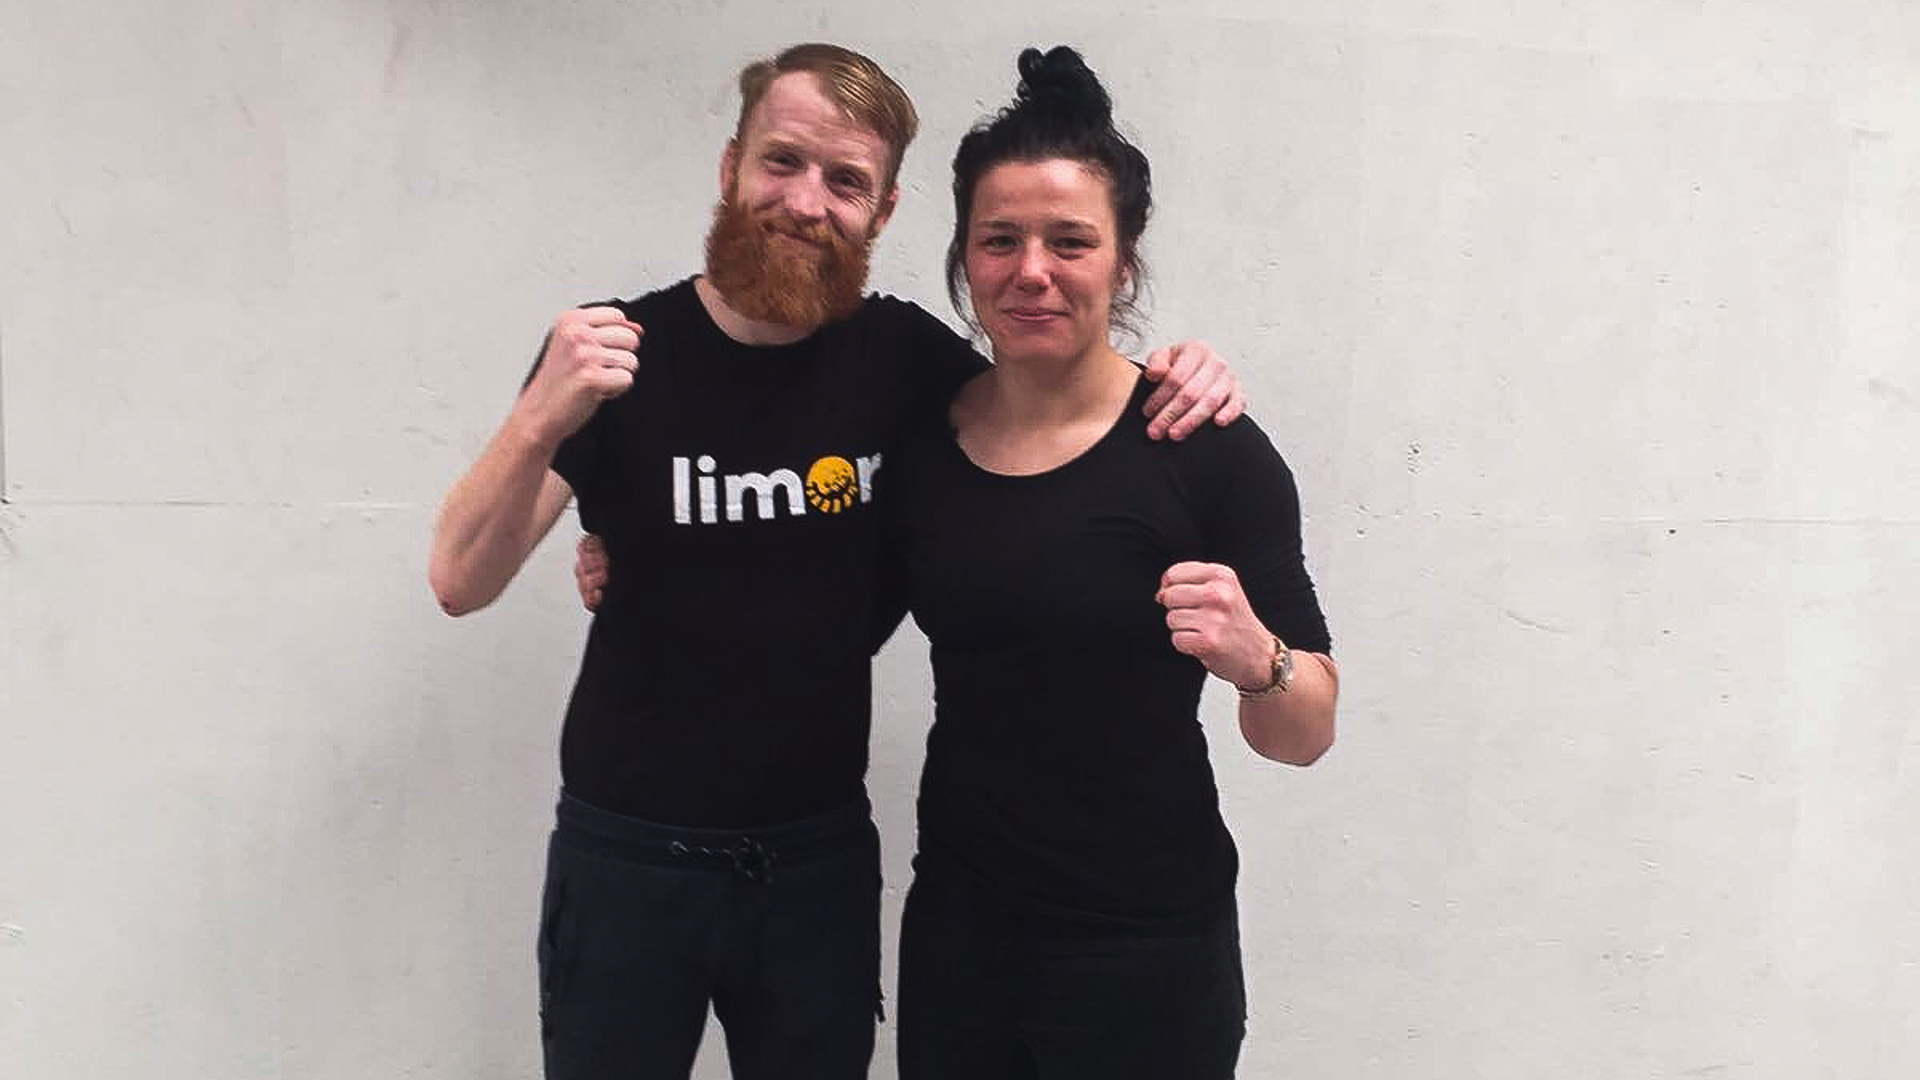 Sinead Kavanagh a recent guest on Paddy Holohan's 'No shame' Limor podcast.